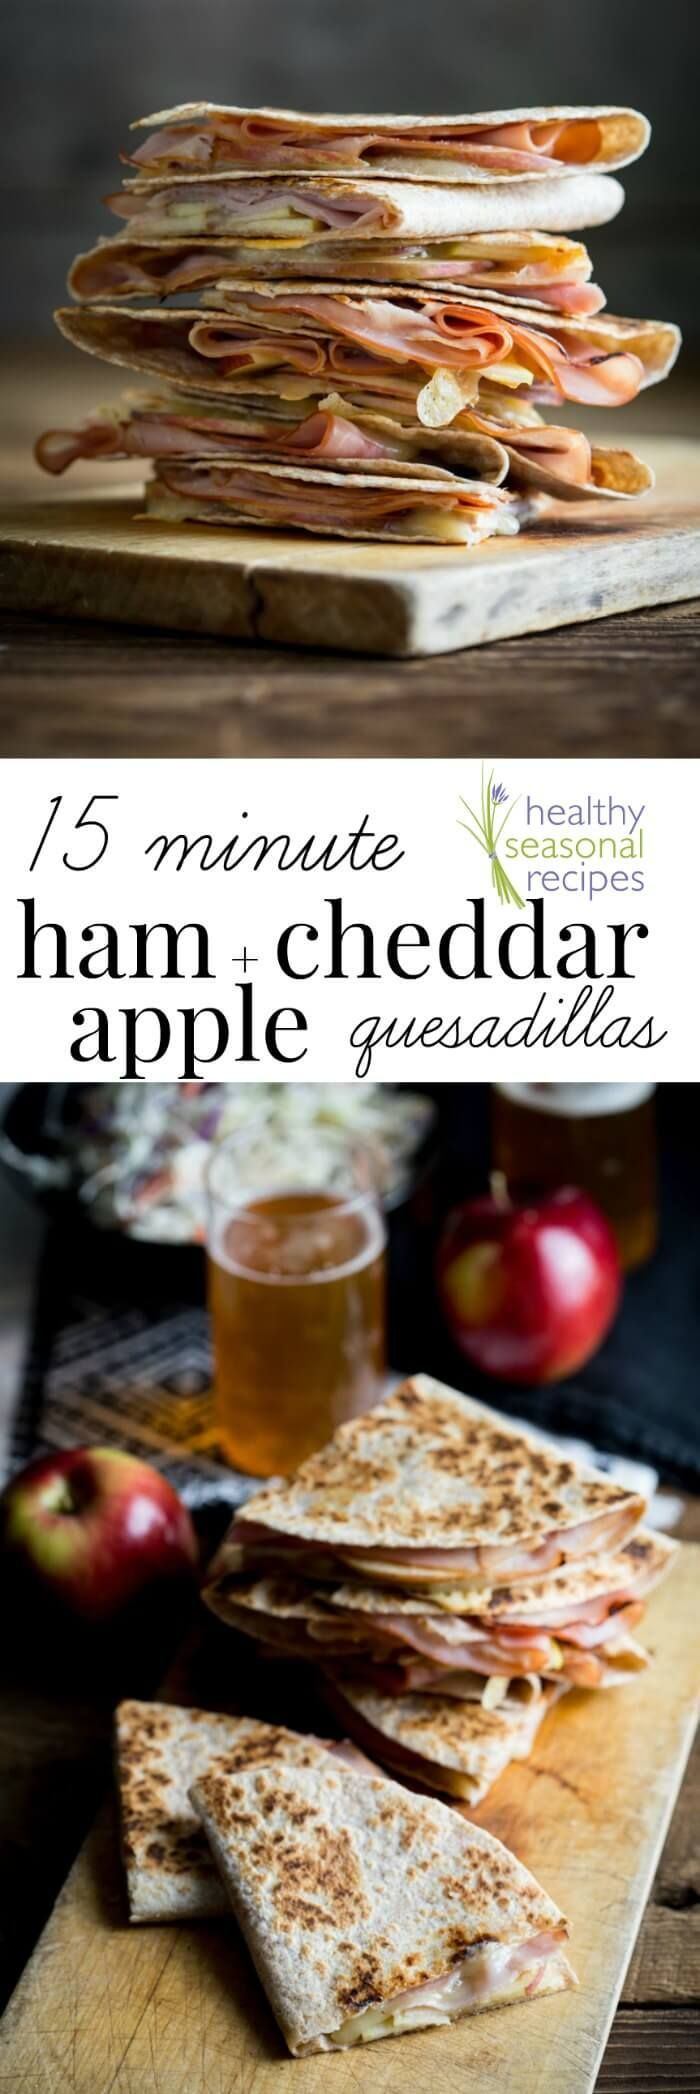 Apple ham and cheddar quesadillas images